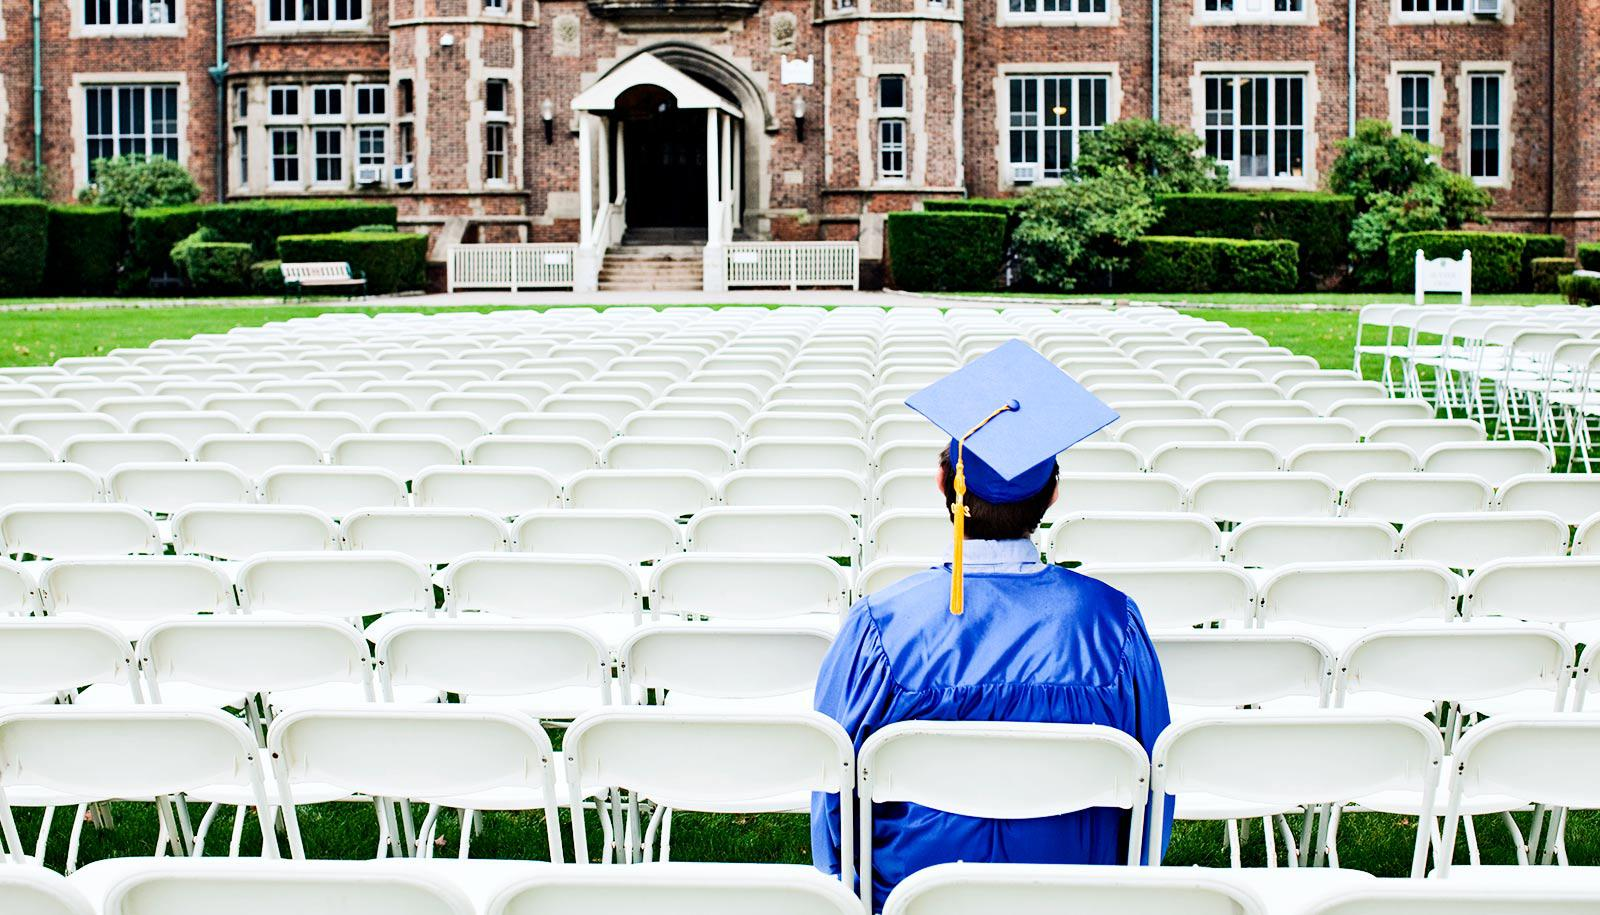 A student sits alone at an empty graduation ceremony in blue cap and gown